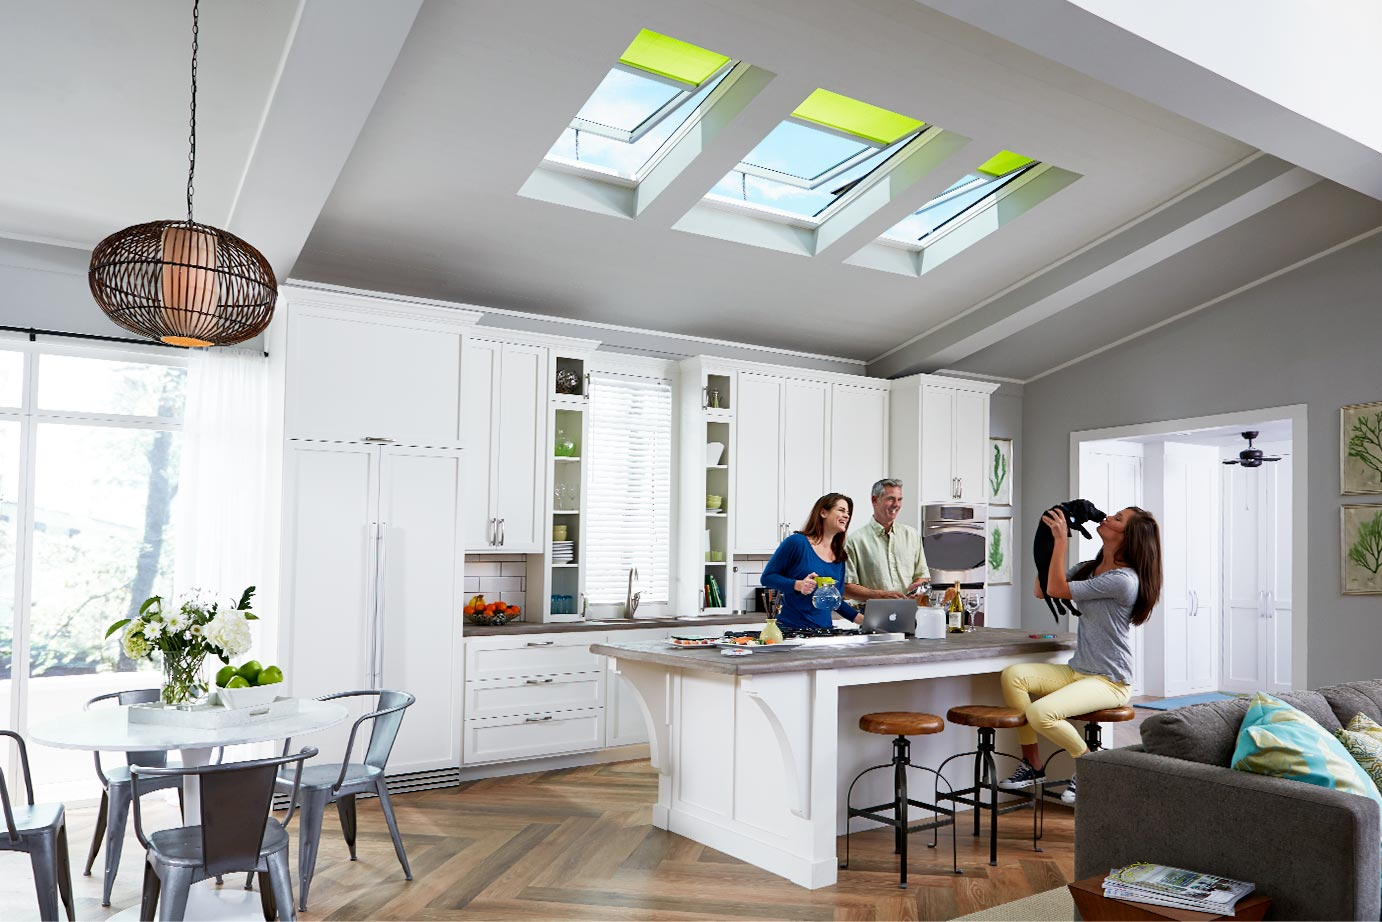 kitchen green blinds?h=922&la=en&w=1382&cc=grid_12&key=145917965341898&sw=960 velux frequently asked questions velux klf 100 wiring diagram at readyjetset.co